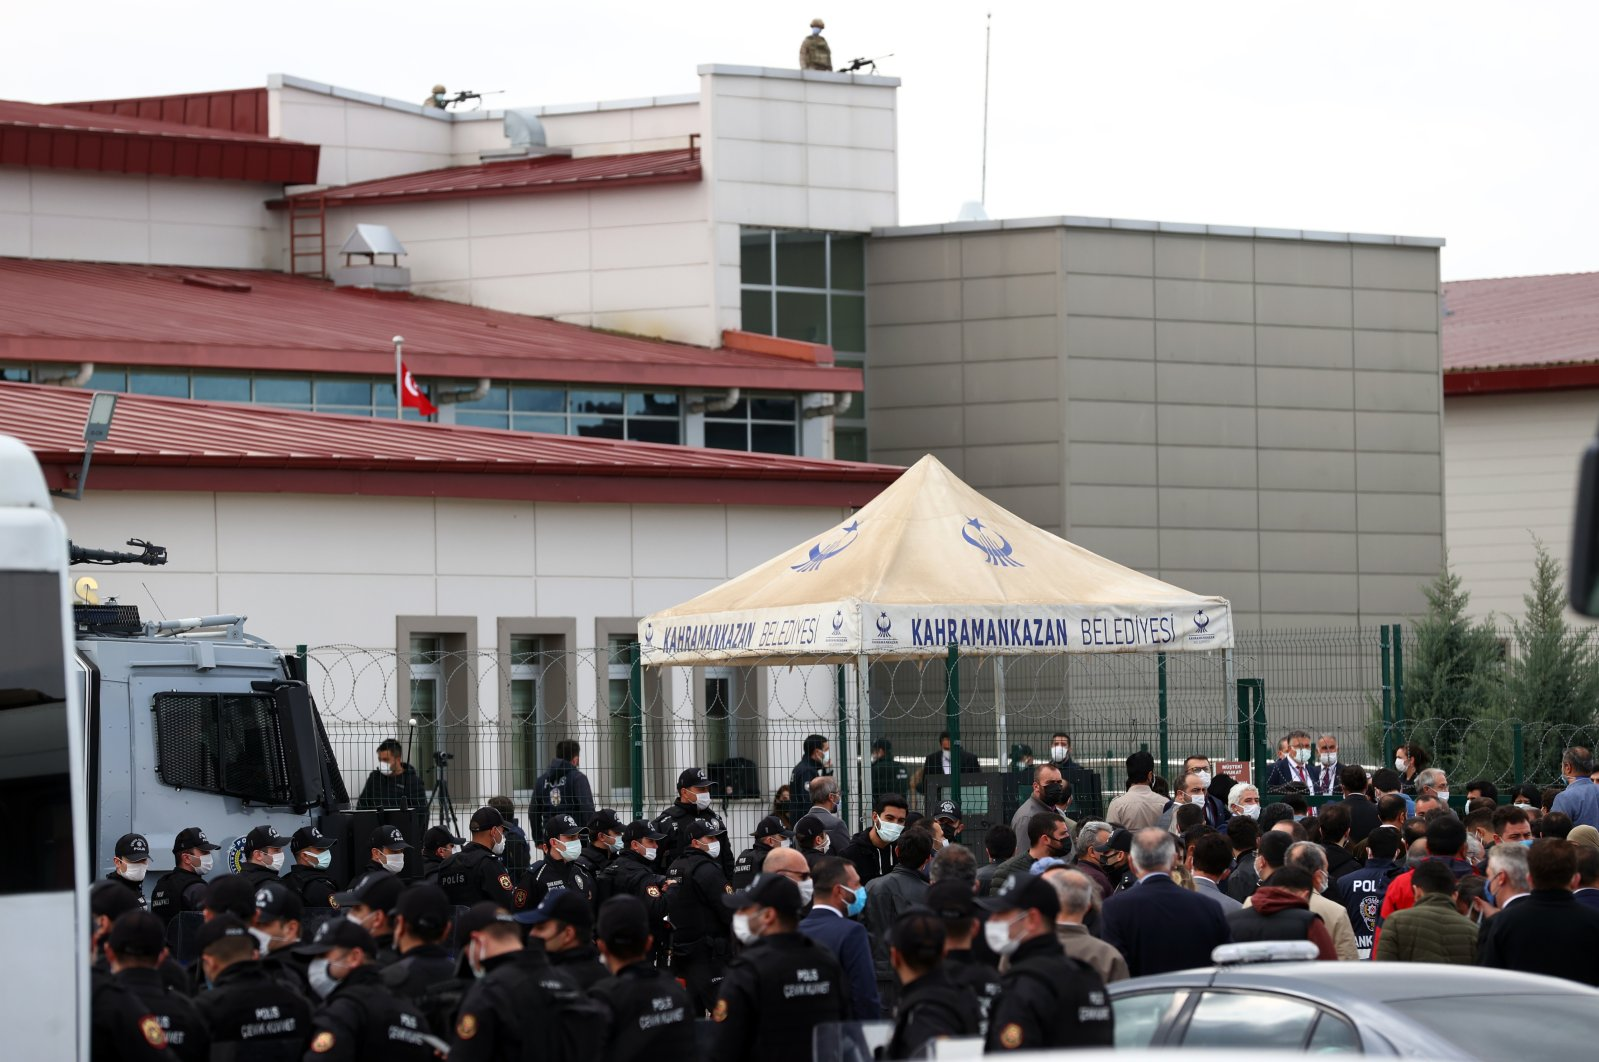 Police officers are on high alert as the trial of 108 suspects, including PKK and HDP figures, begins in the capital Ankara, Turkey, April 26, 2021. (AA Photo)